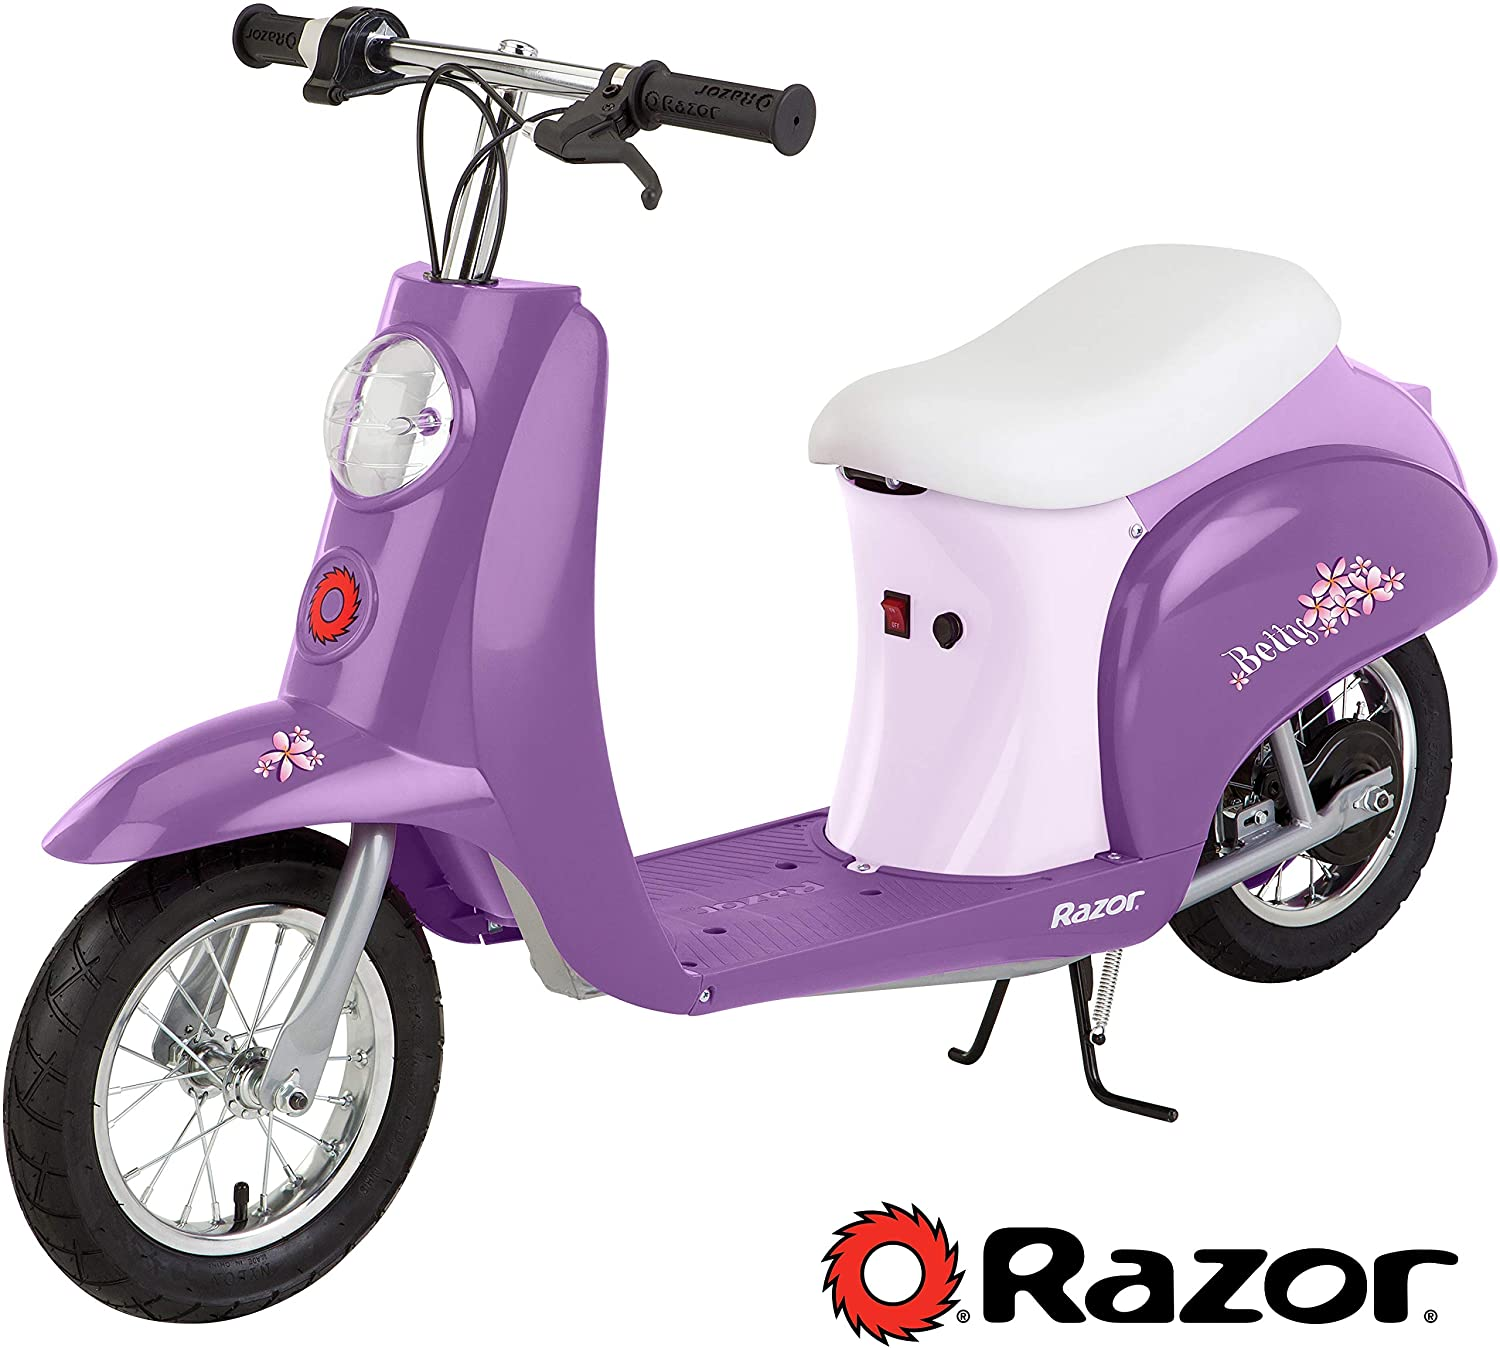 Top 10 Best Razor Scooter (2020 Reviews & Buying Guide) 4